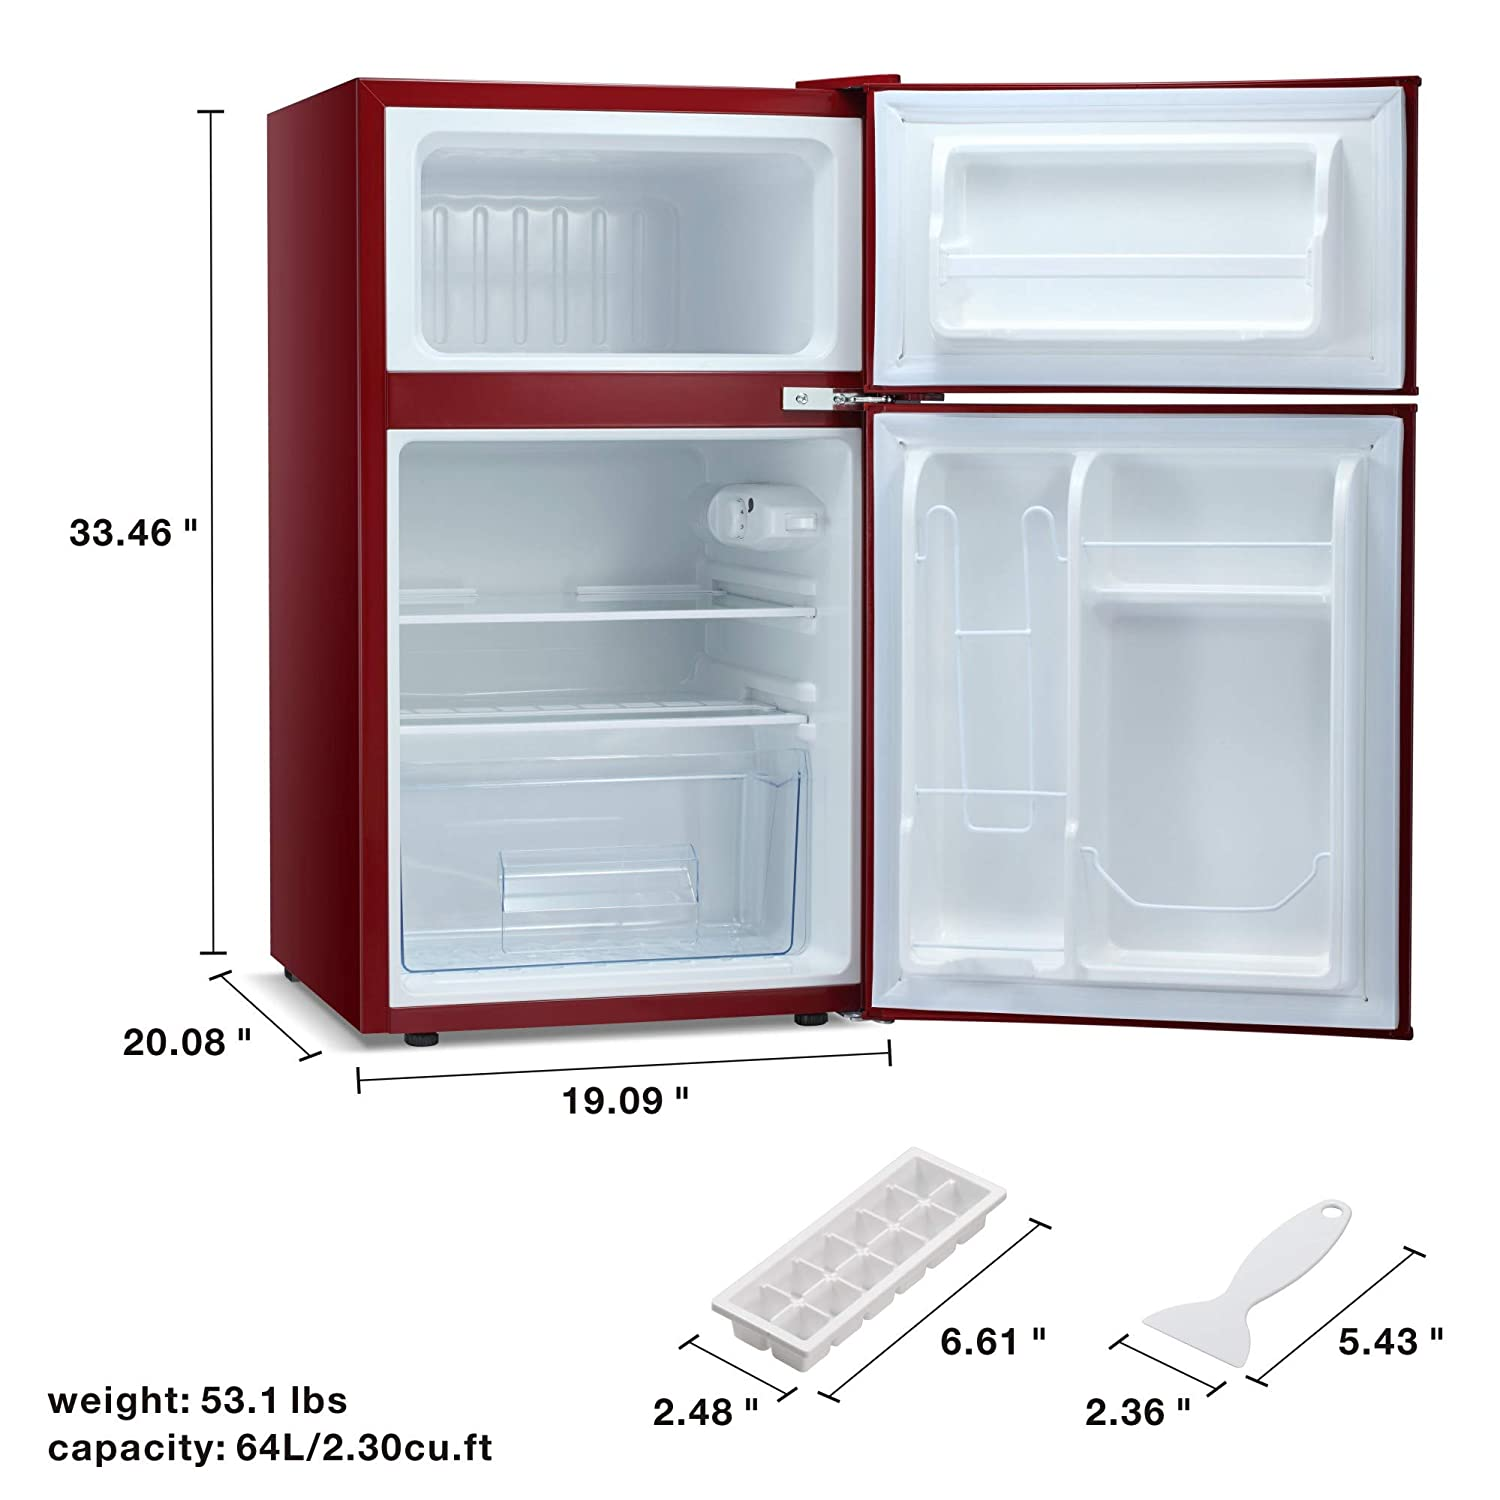 3.3 Cu.ft Portable Double-door Freezer with Removable shelves Built-in Compact Fridge Kismile Free-standing Upright Refrigerator for Dorm//Apartment//Hotel//Office//Home//RV,Silver